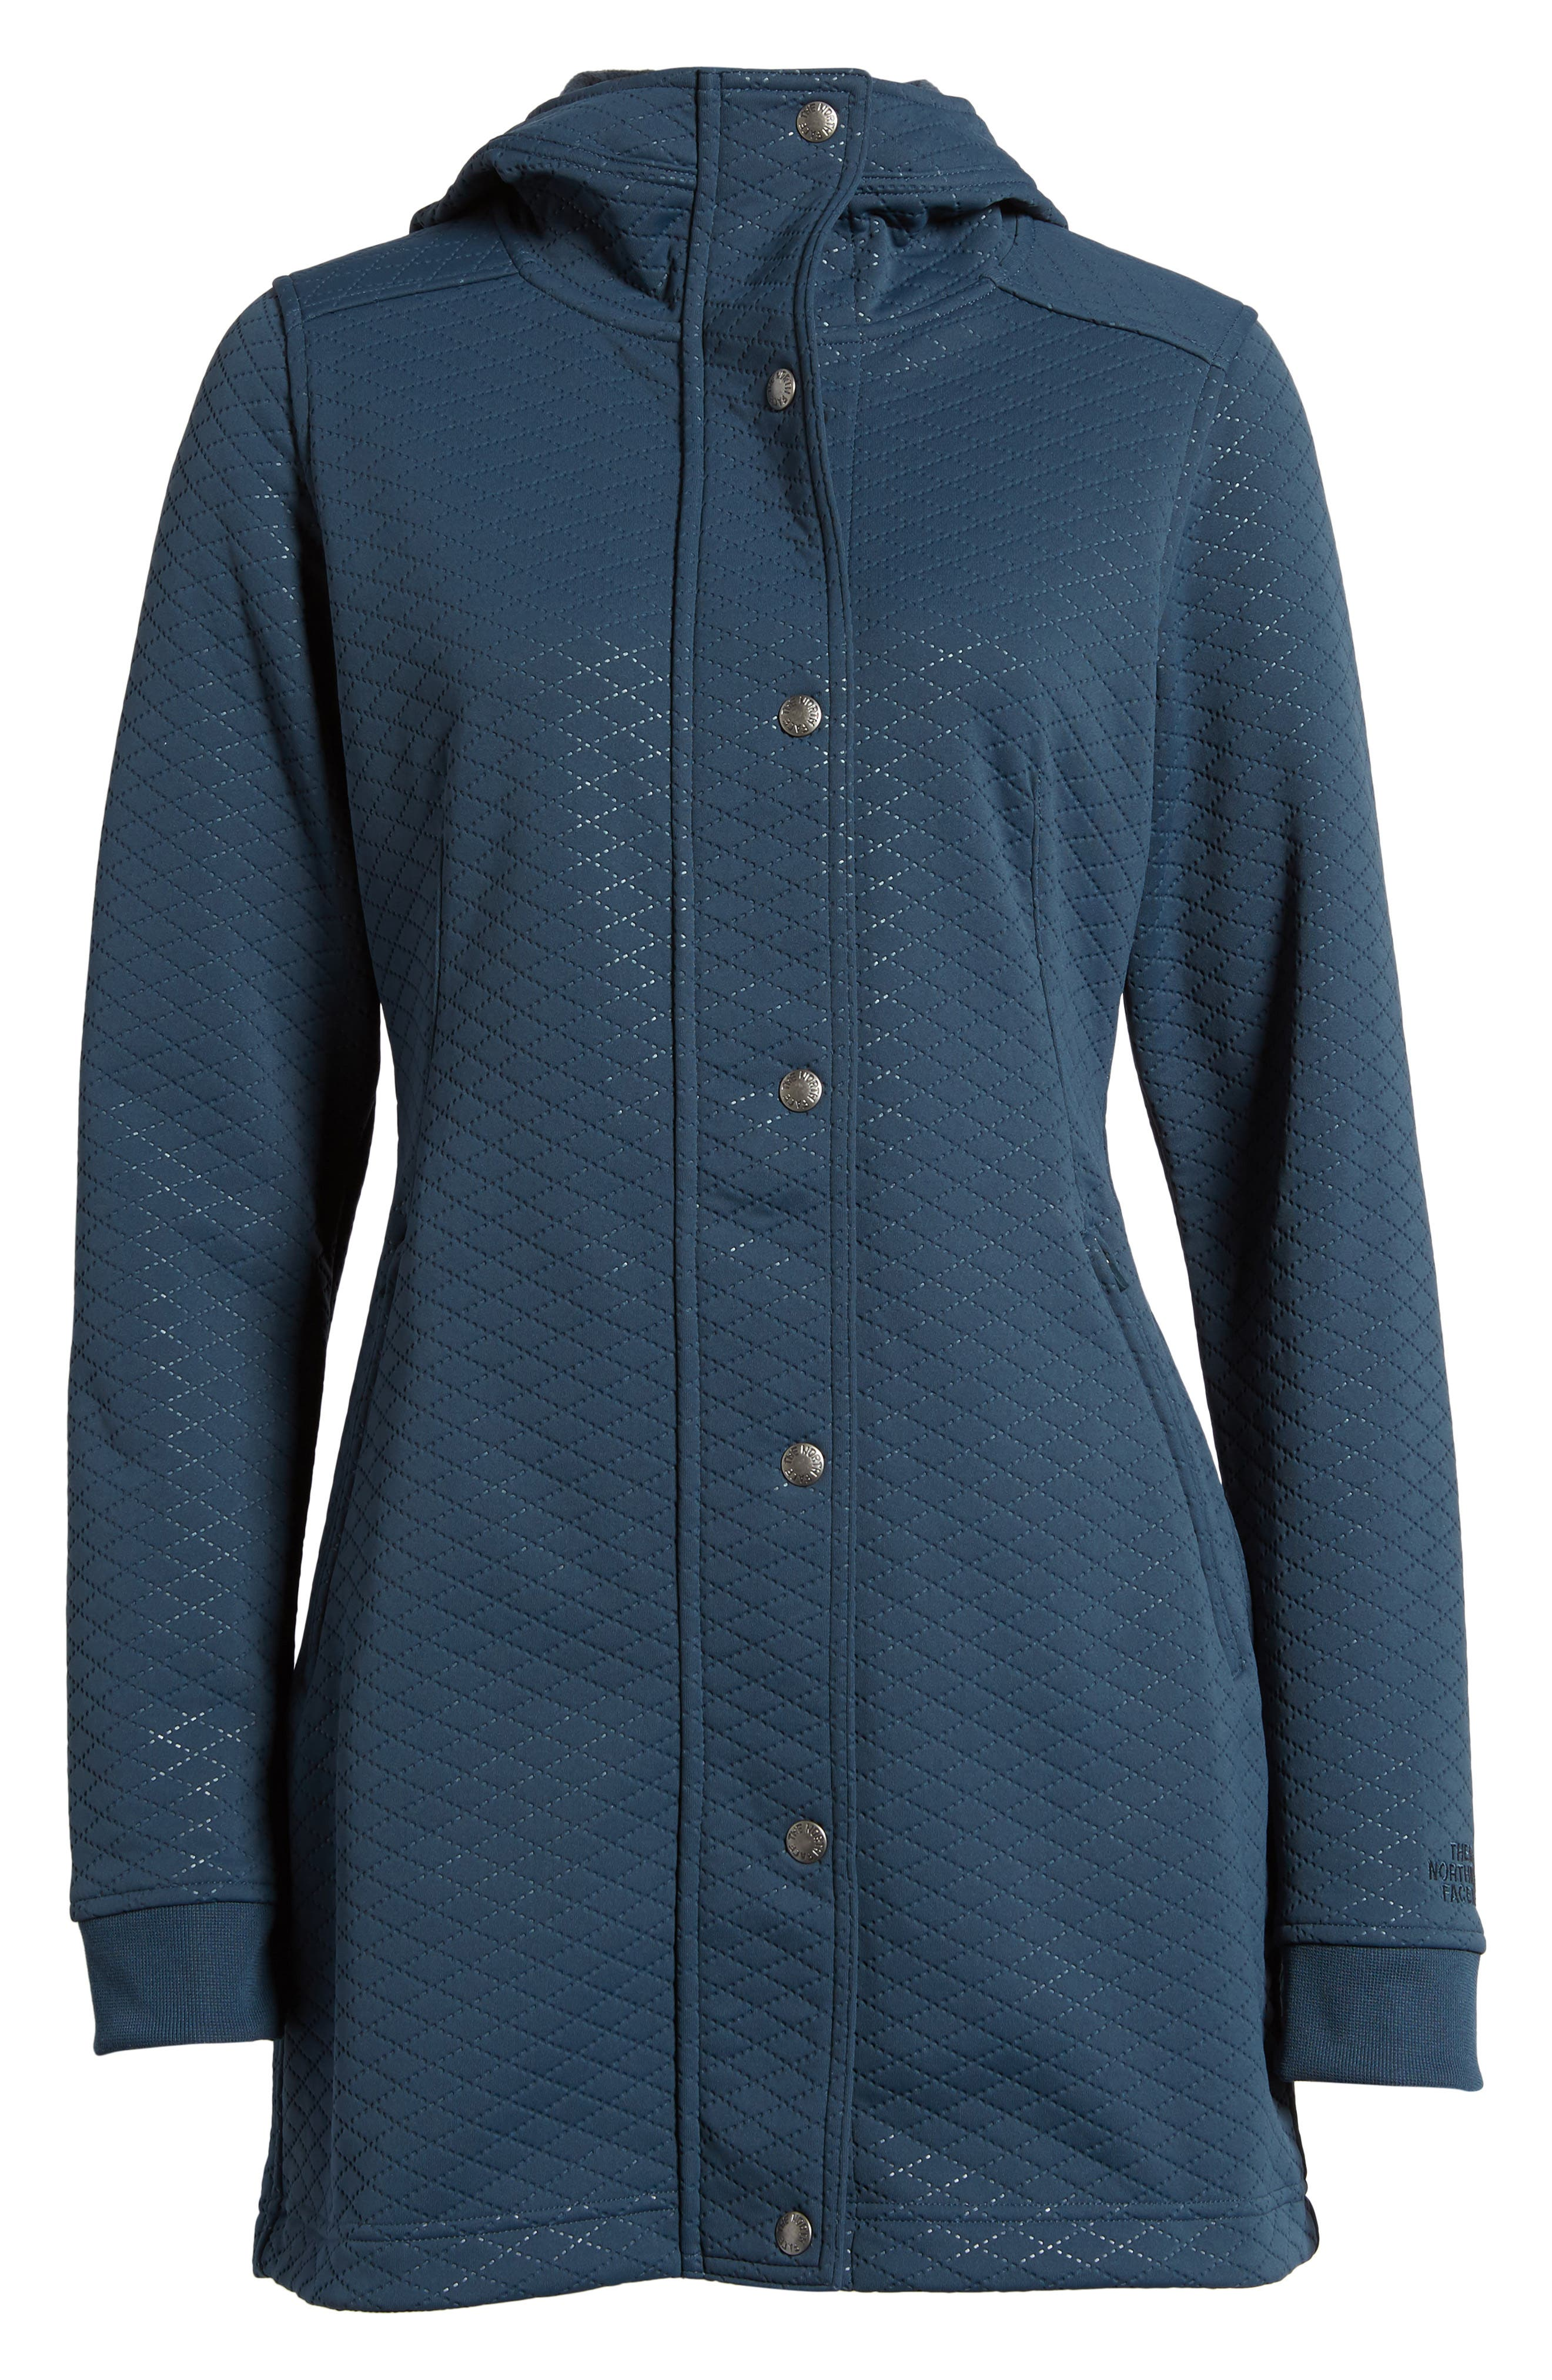 Recover-Up Jacket,                         Main,                         color, Ink Blue